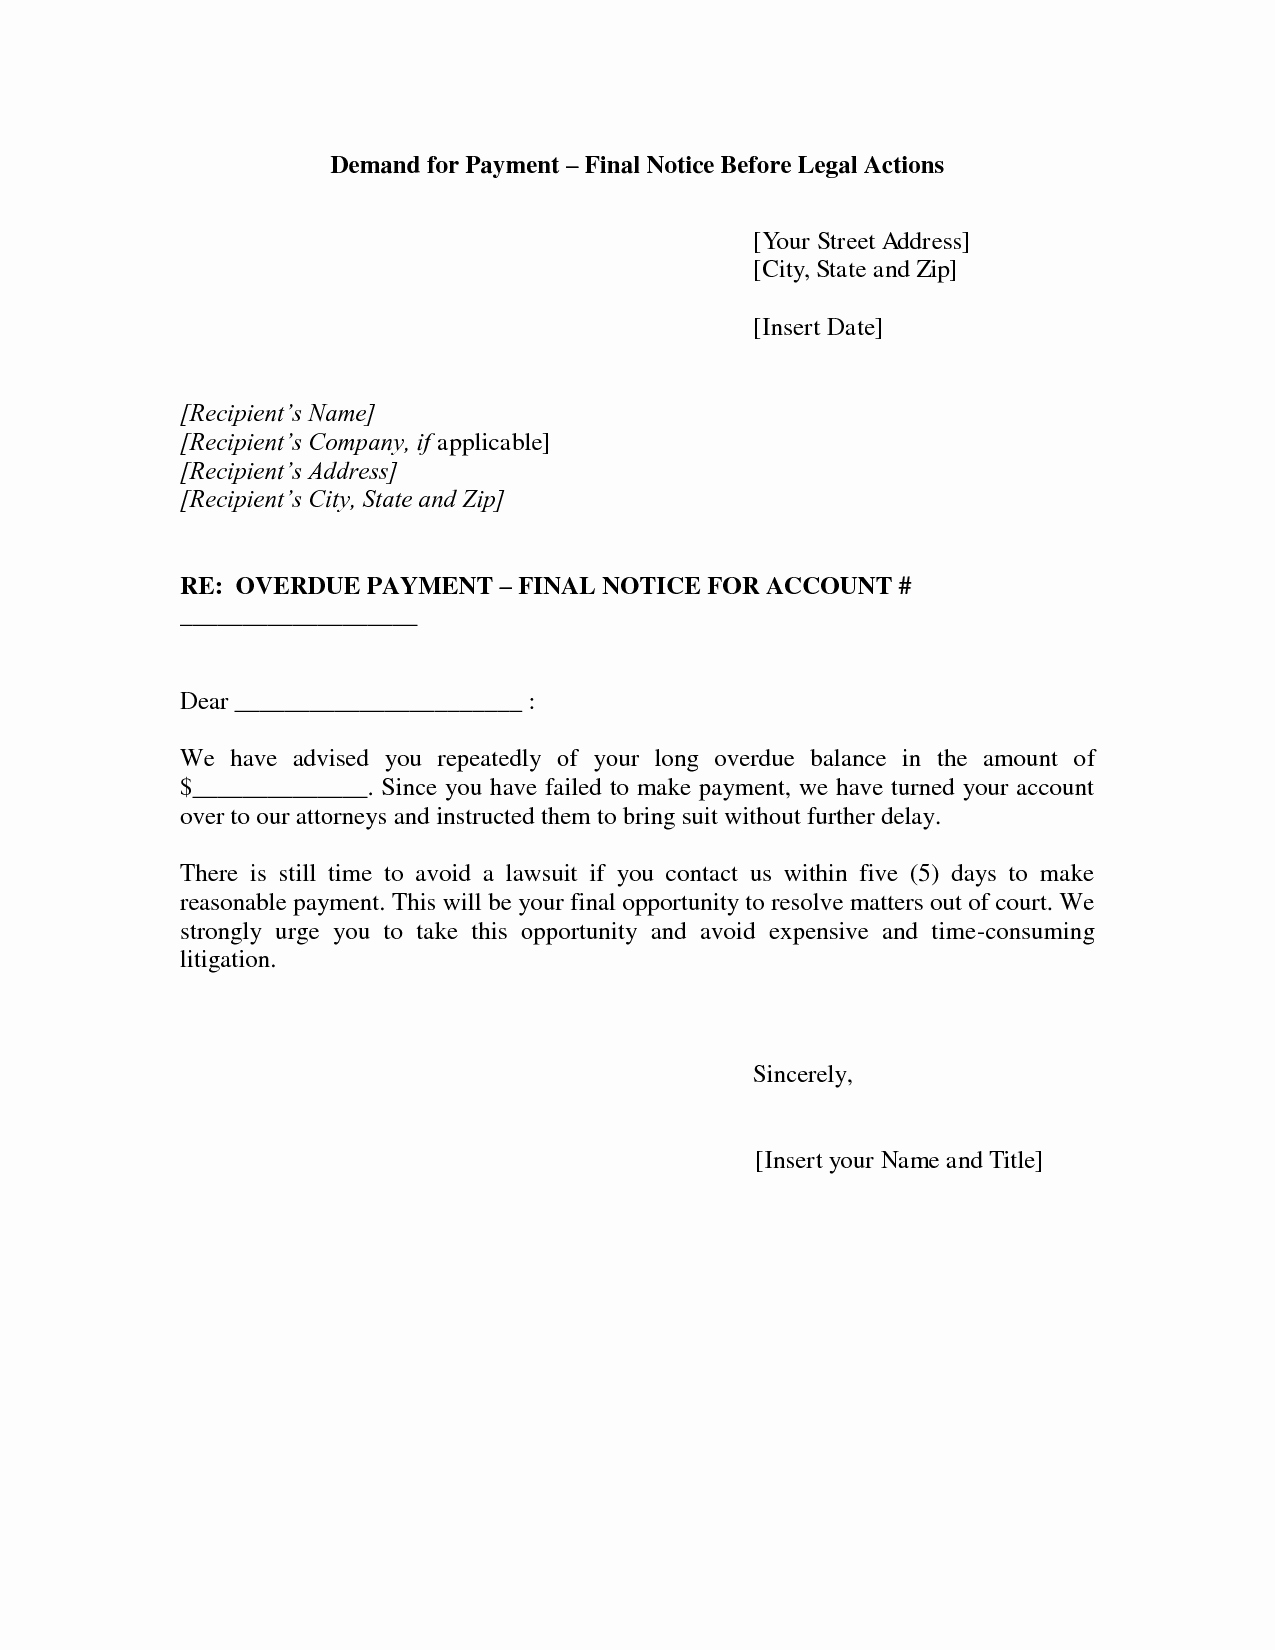 Demand for Payment Letter Template New Best S Of formal Demand for Payment Letter Sample